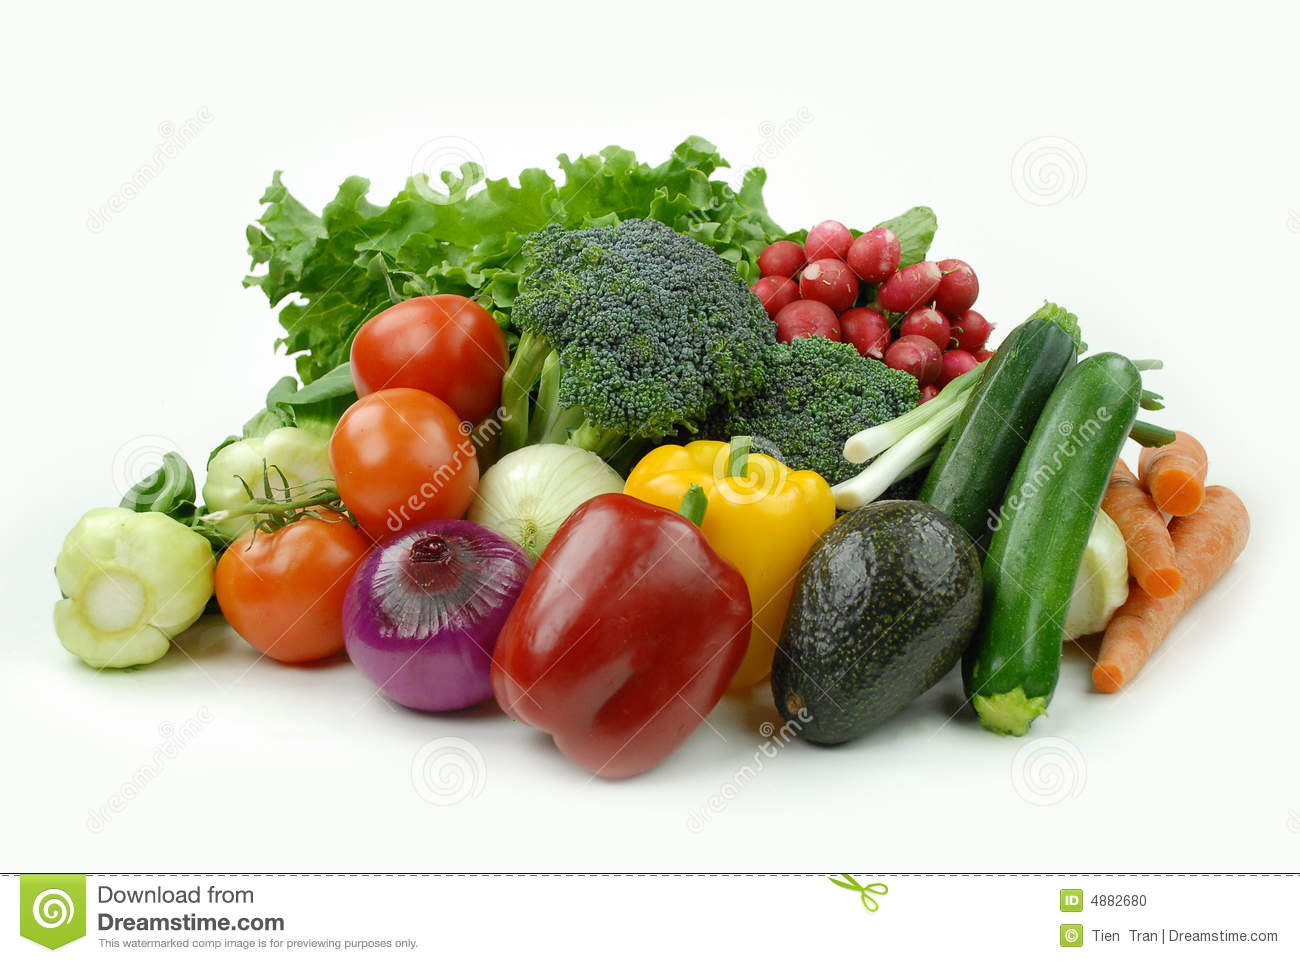 Veggies are good for you and her pussy 7